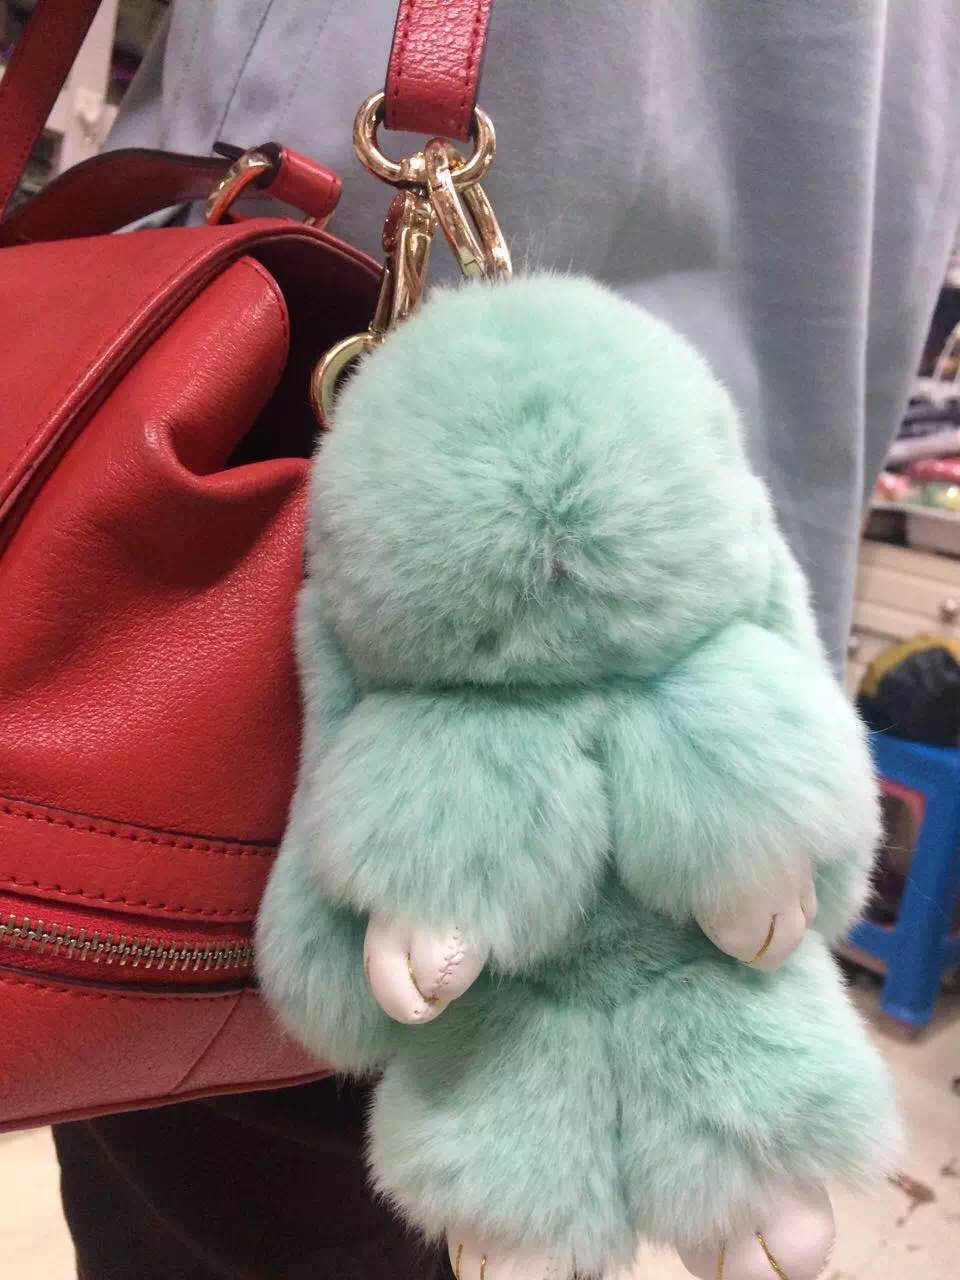 Cute Bunny Purse Charm tote handbag accessories kawaii Rabbit pendants bag  charm keychains Mint Green Puffs Genuine Fluffy 8214af98f